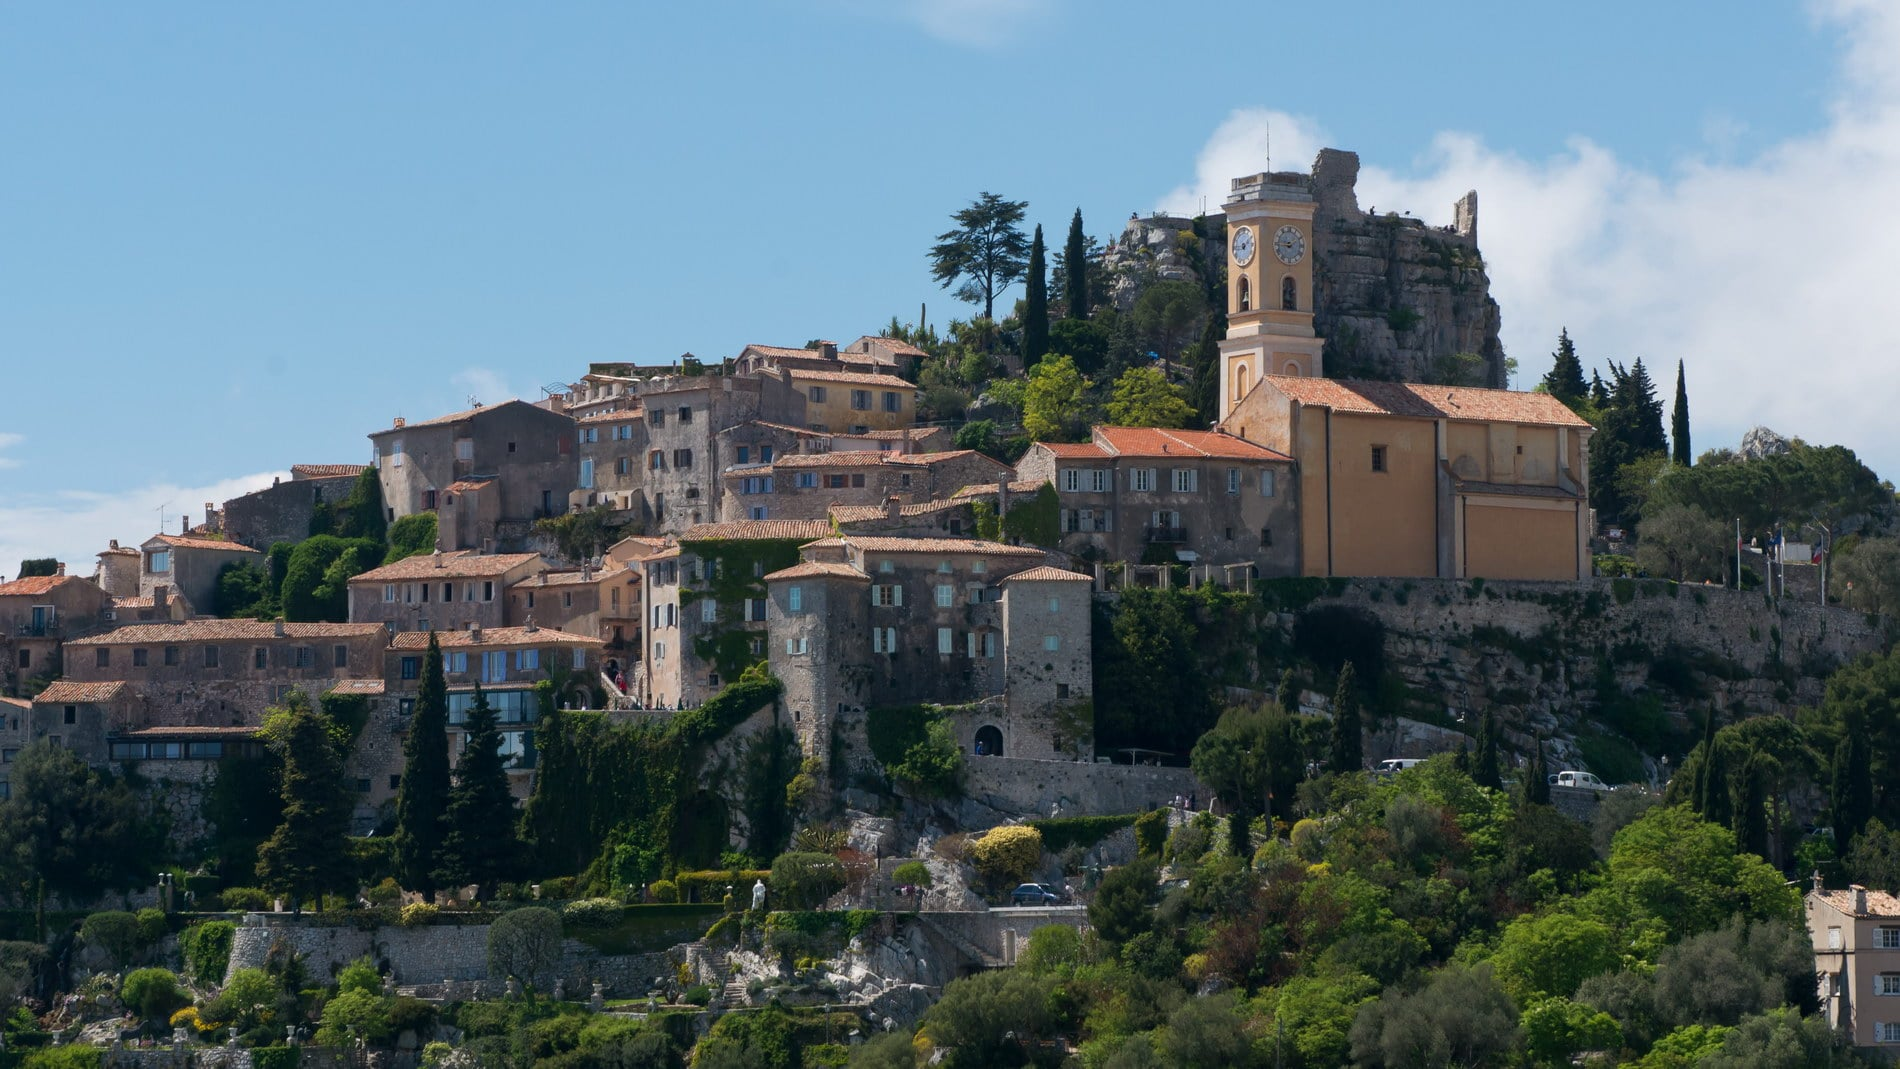 Wedding venues South of France Chateau Chevre d'Or